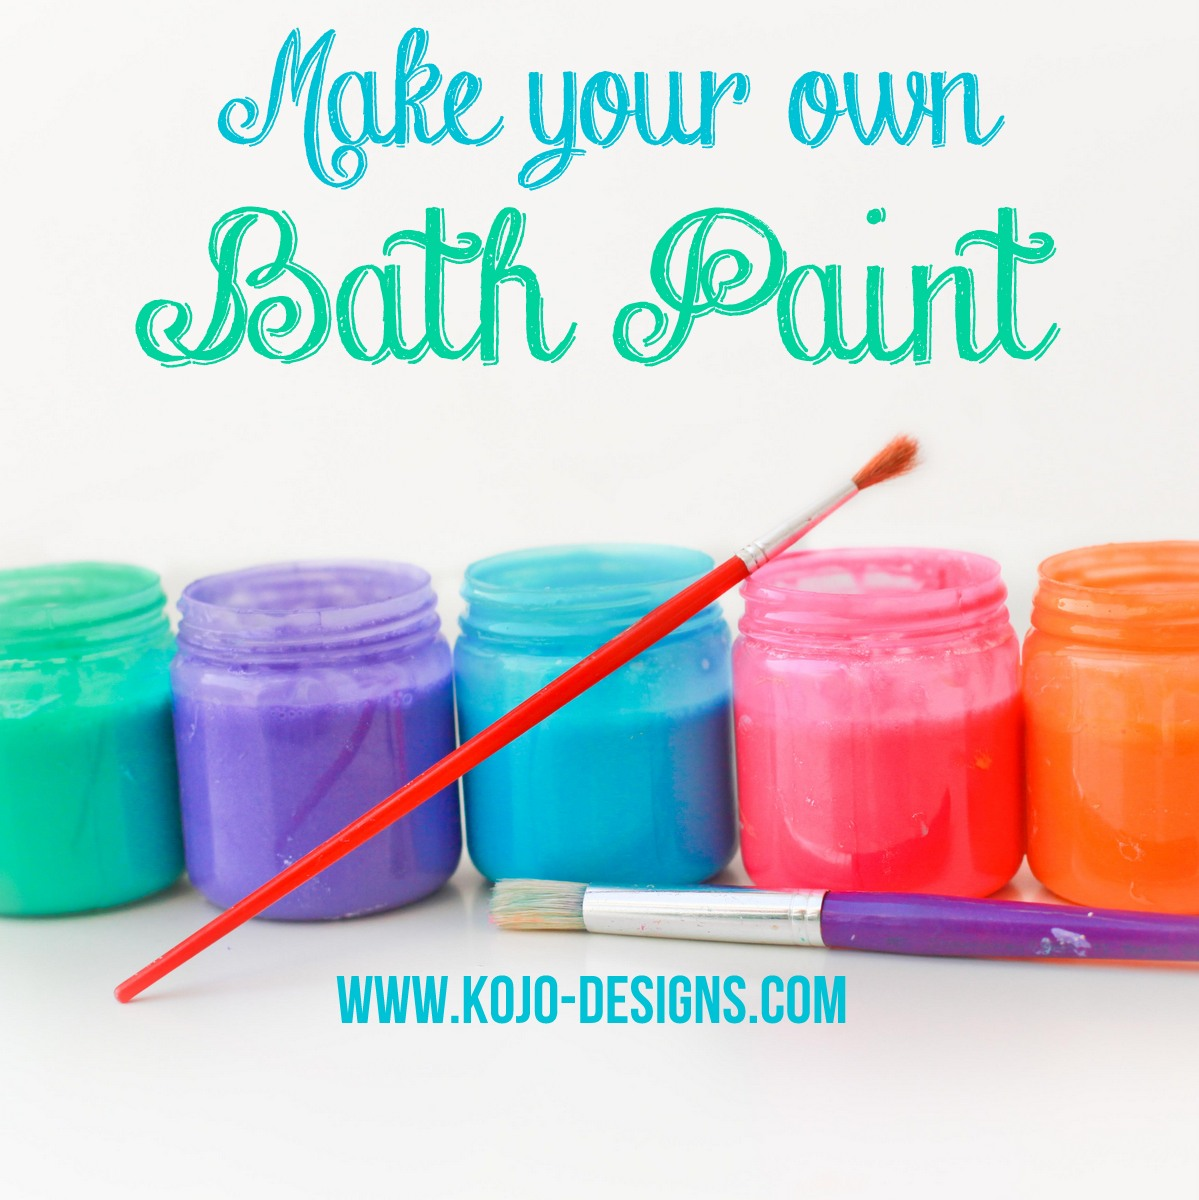 homemade bath paint recipe - Paint Pictures For Kids